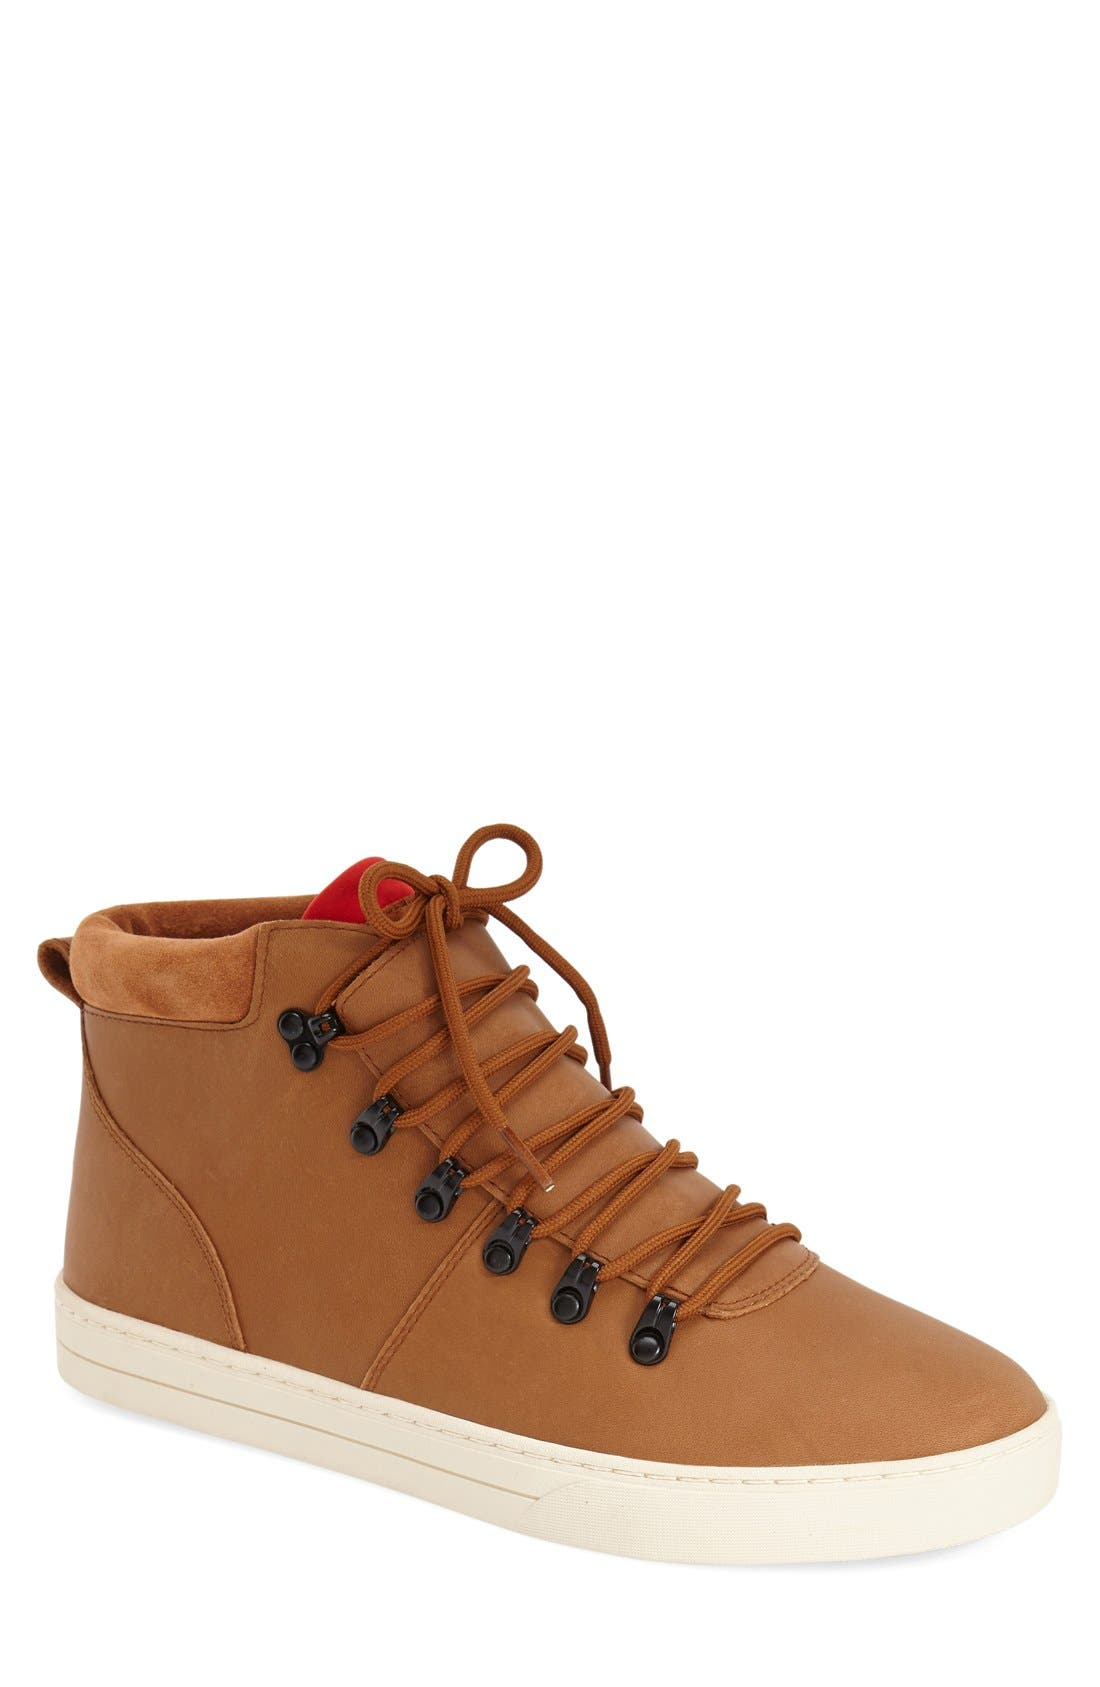 'Grant' Sneaker Boot,                             Main thumbnail 1, color,                             234